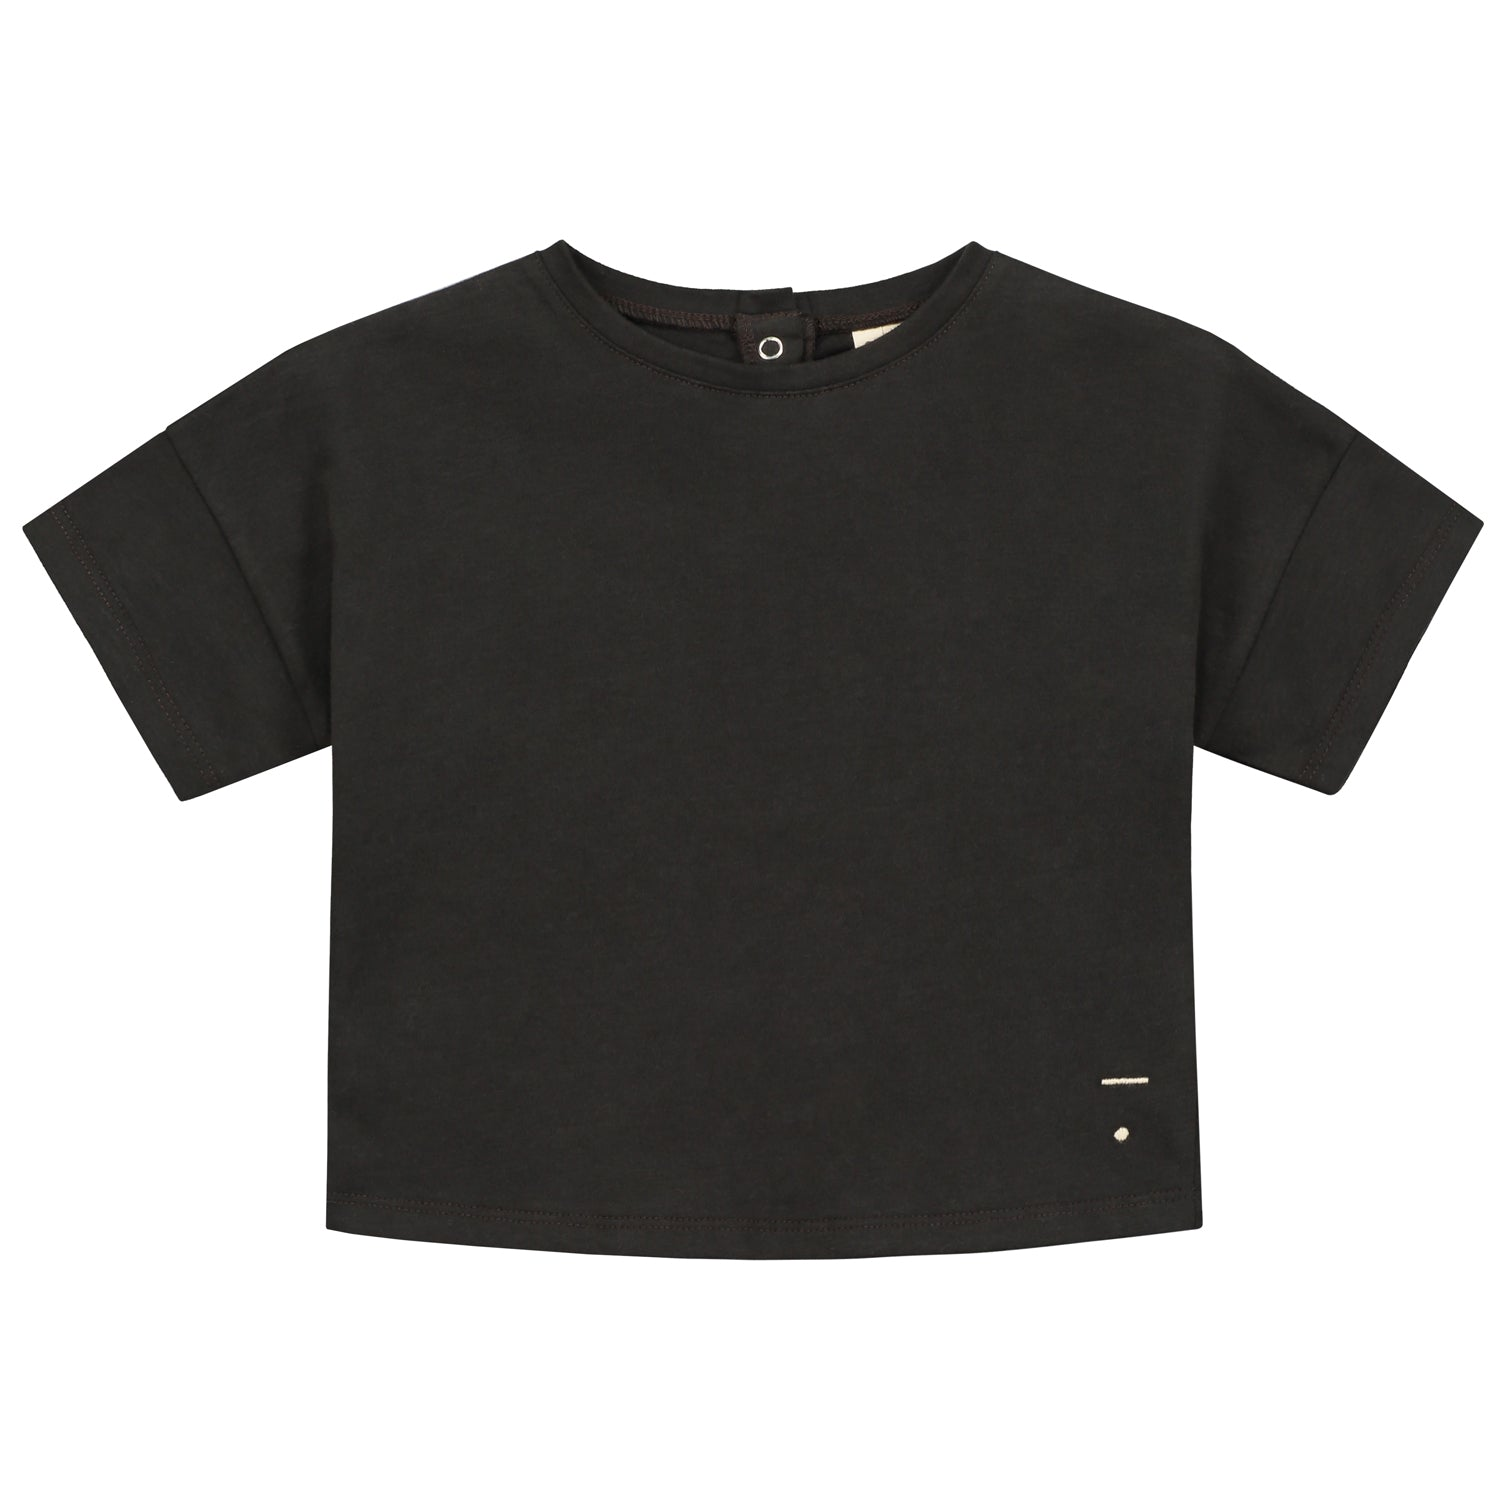 Tee Oversized Cropped Nearly Black